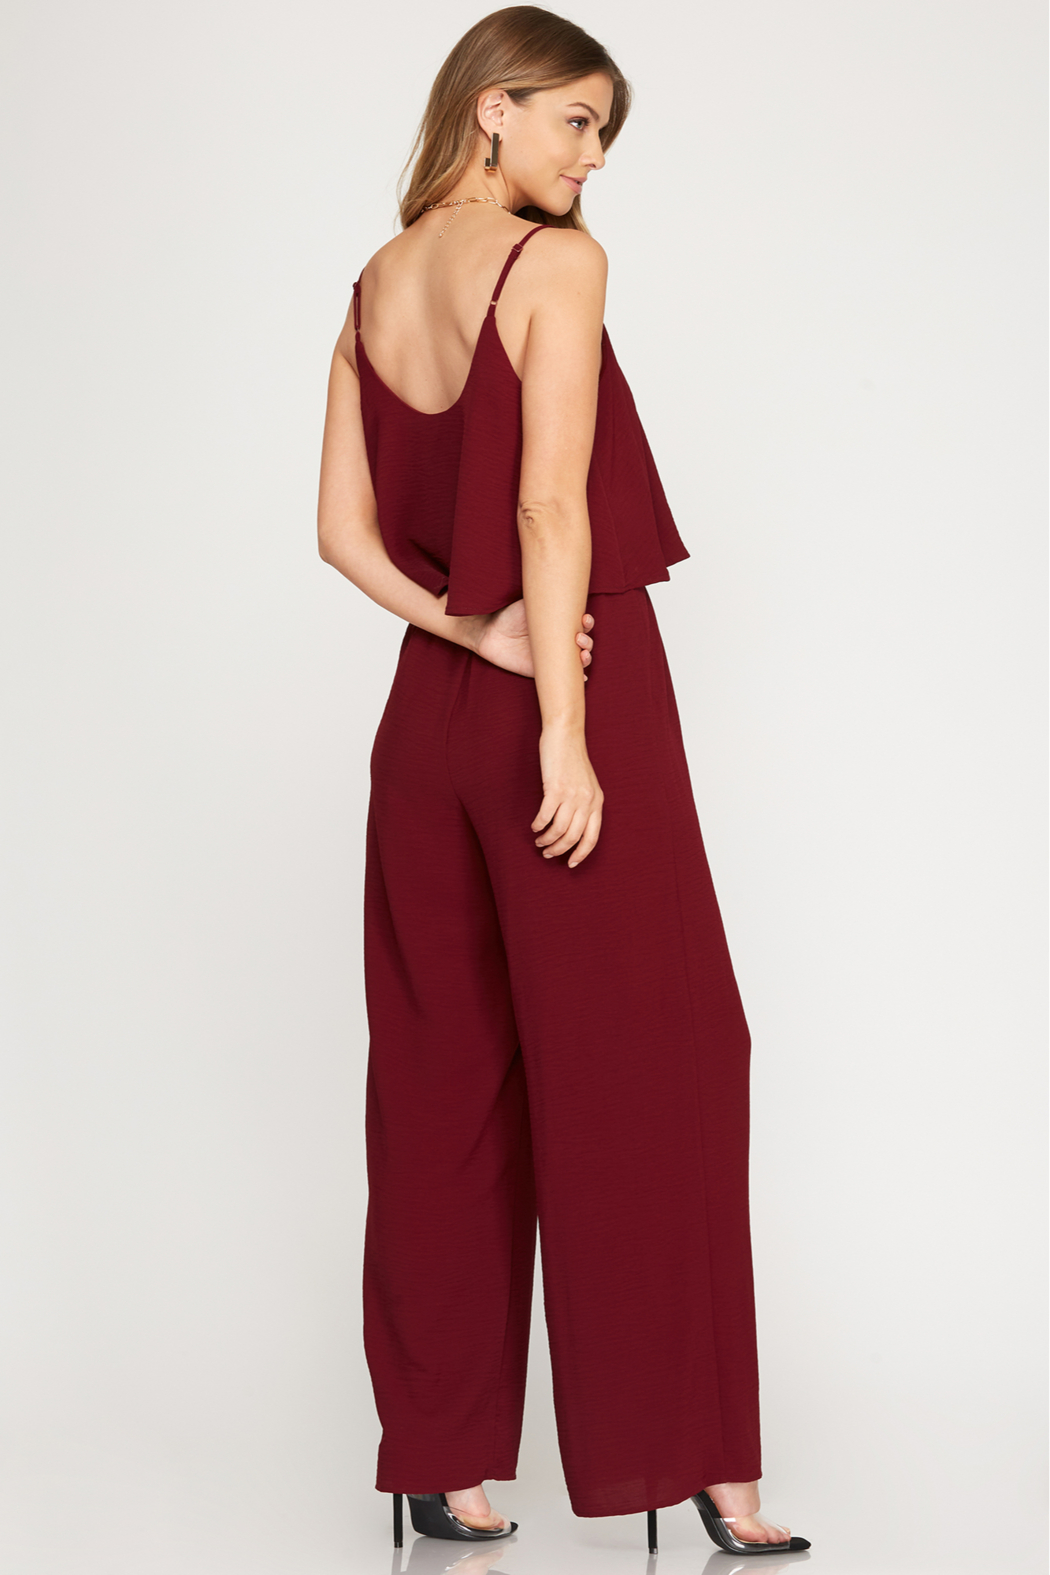 She and Sky Woven Cami Ruffled Overlay Jumpsuit - Front Full Image